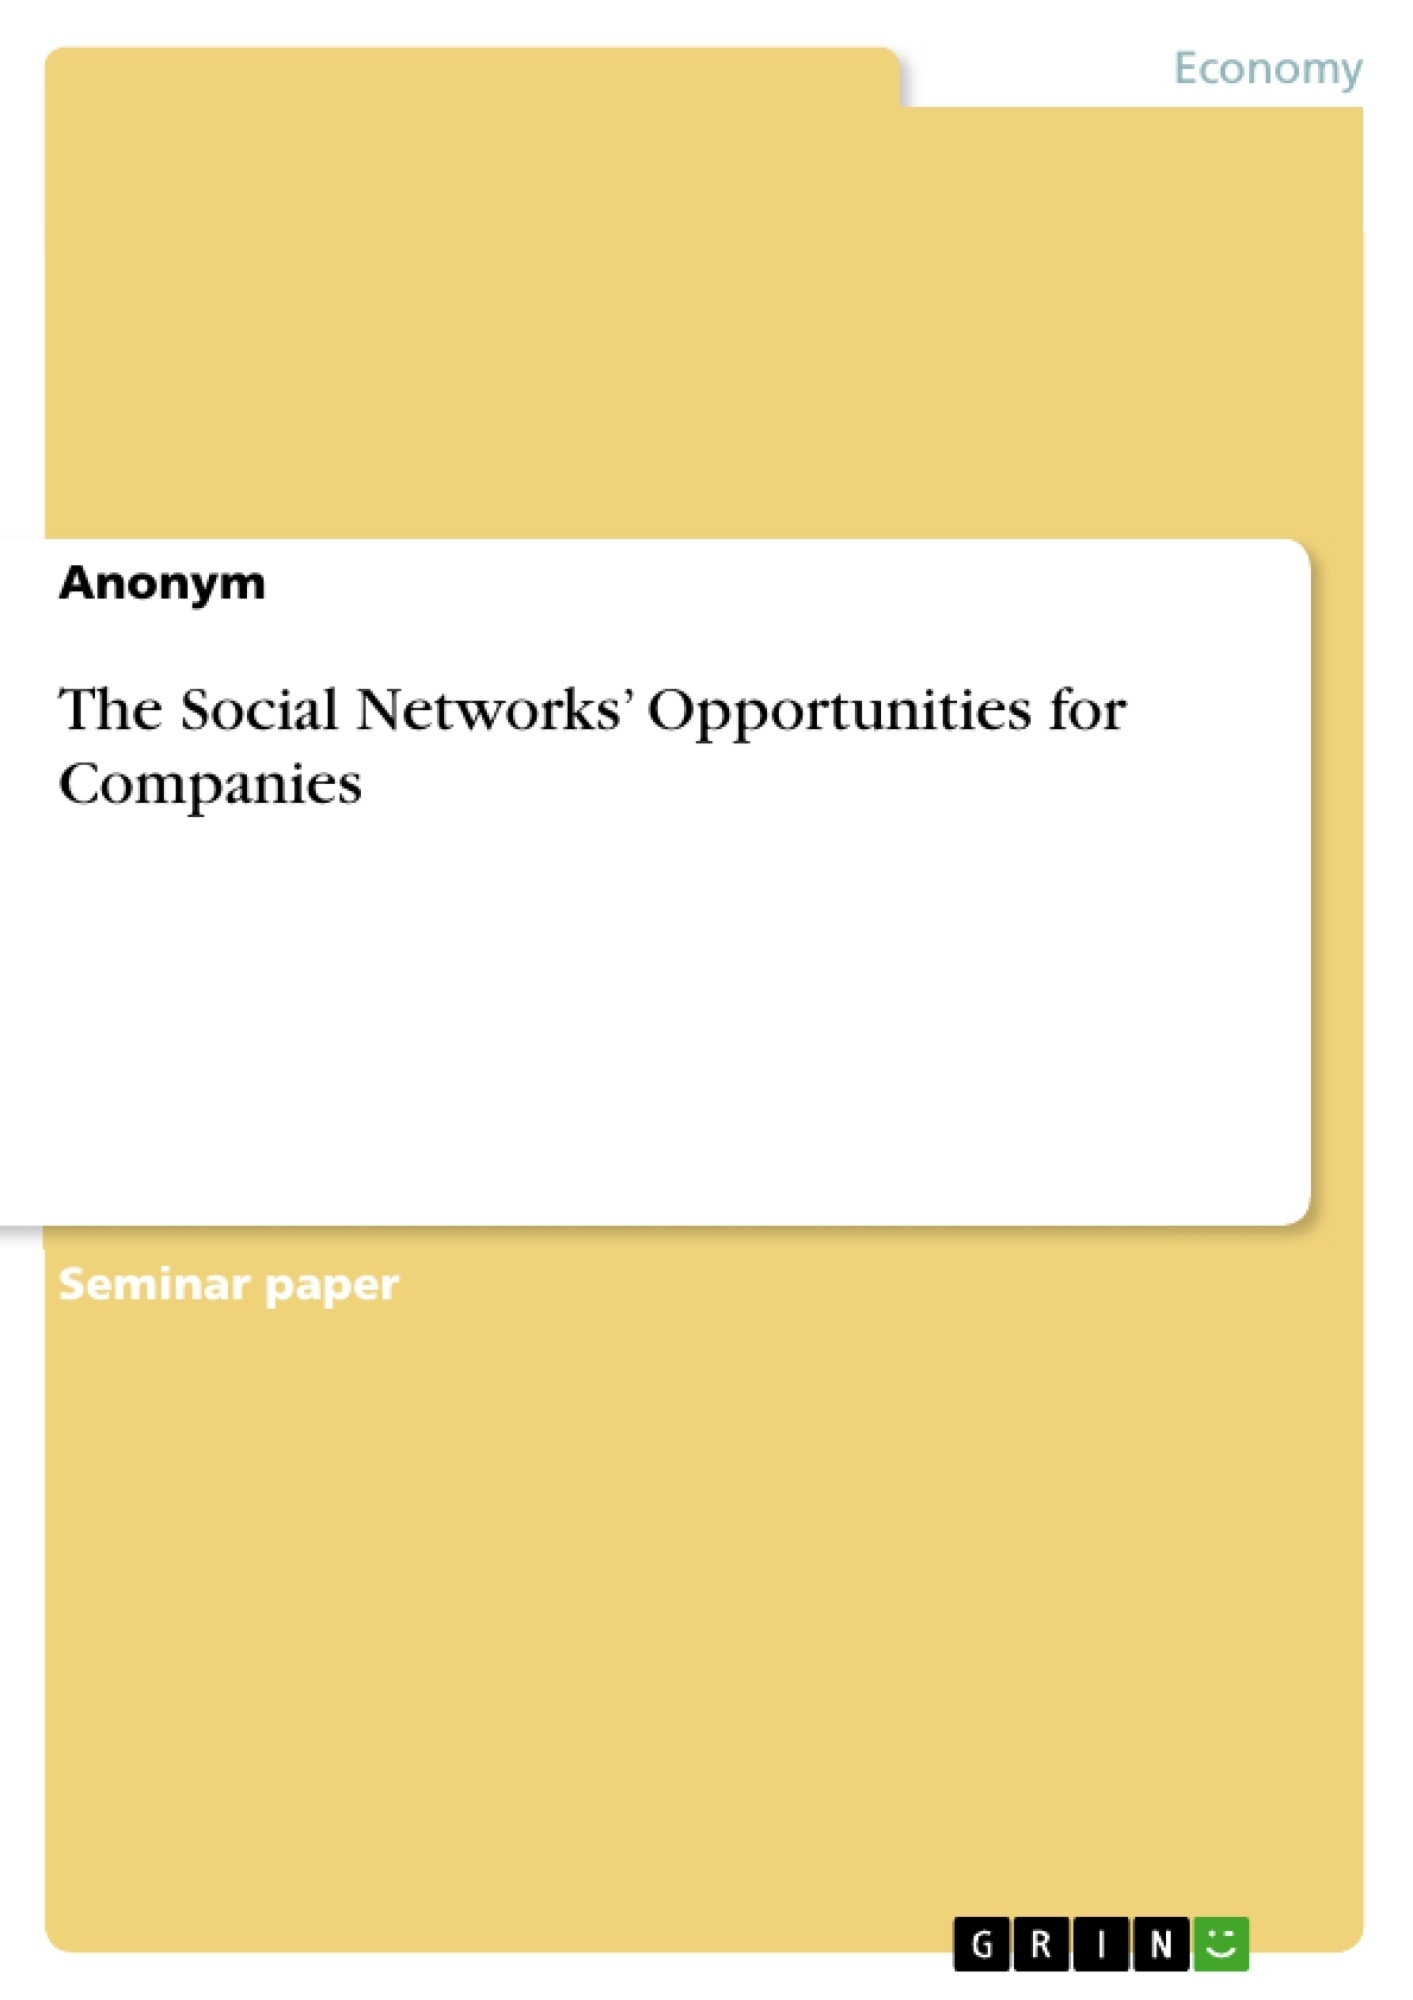 Title: The Social Networks' Opportunities for Companies